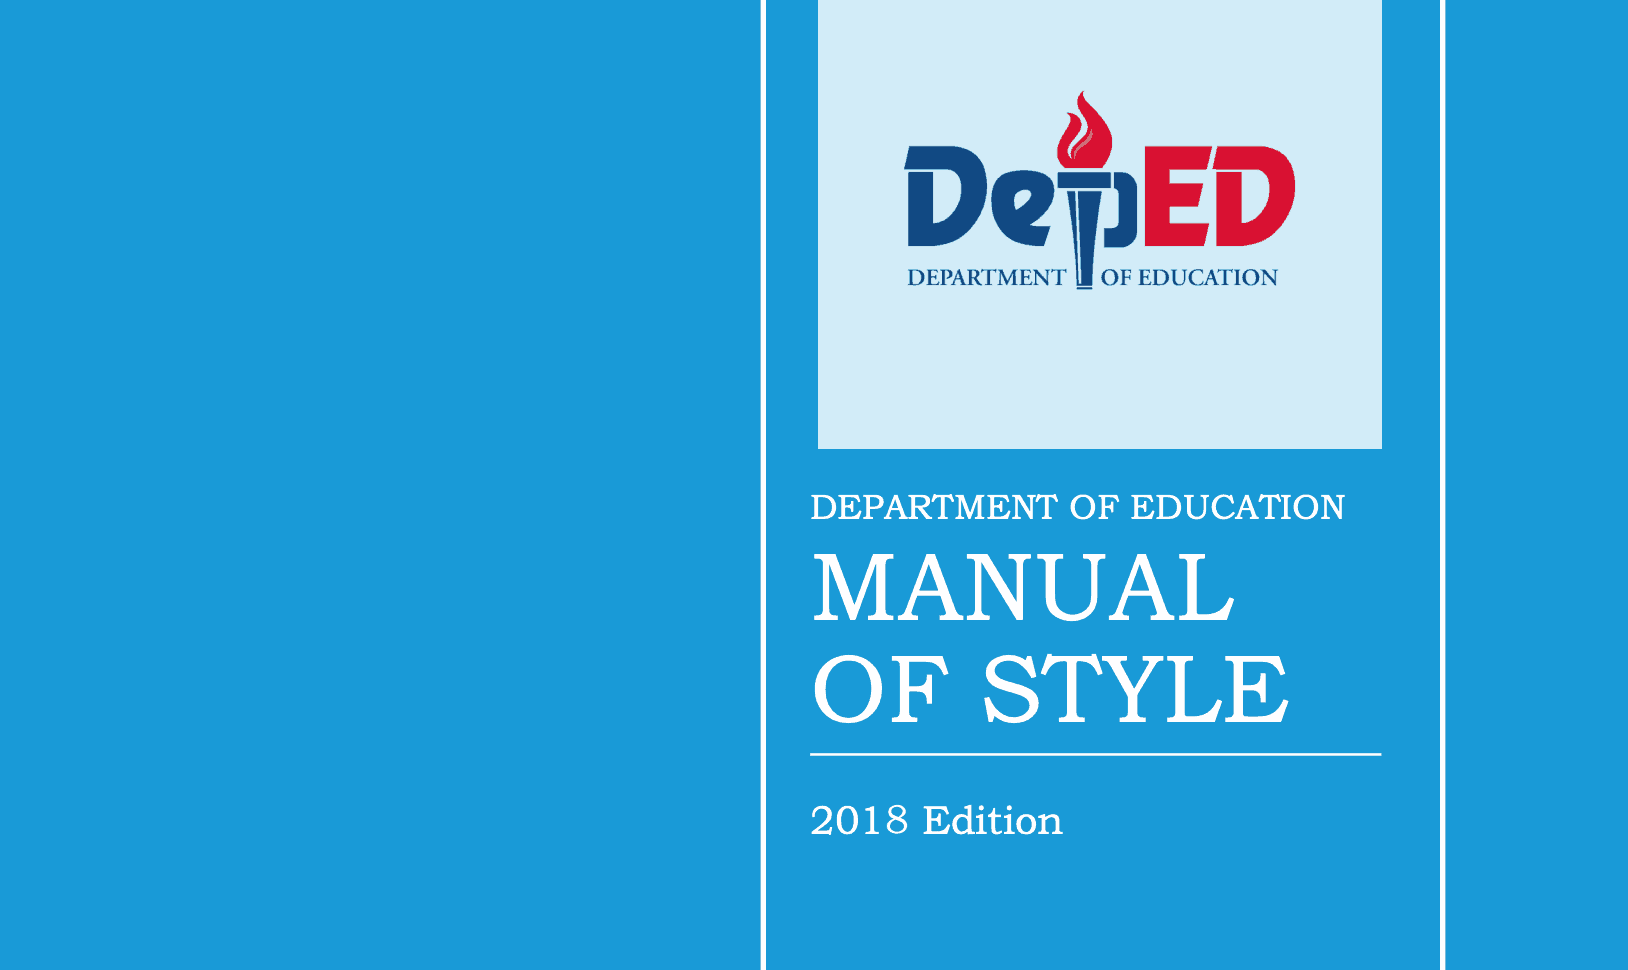 The Department Of Education Deped Manual Of Style